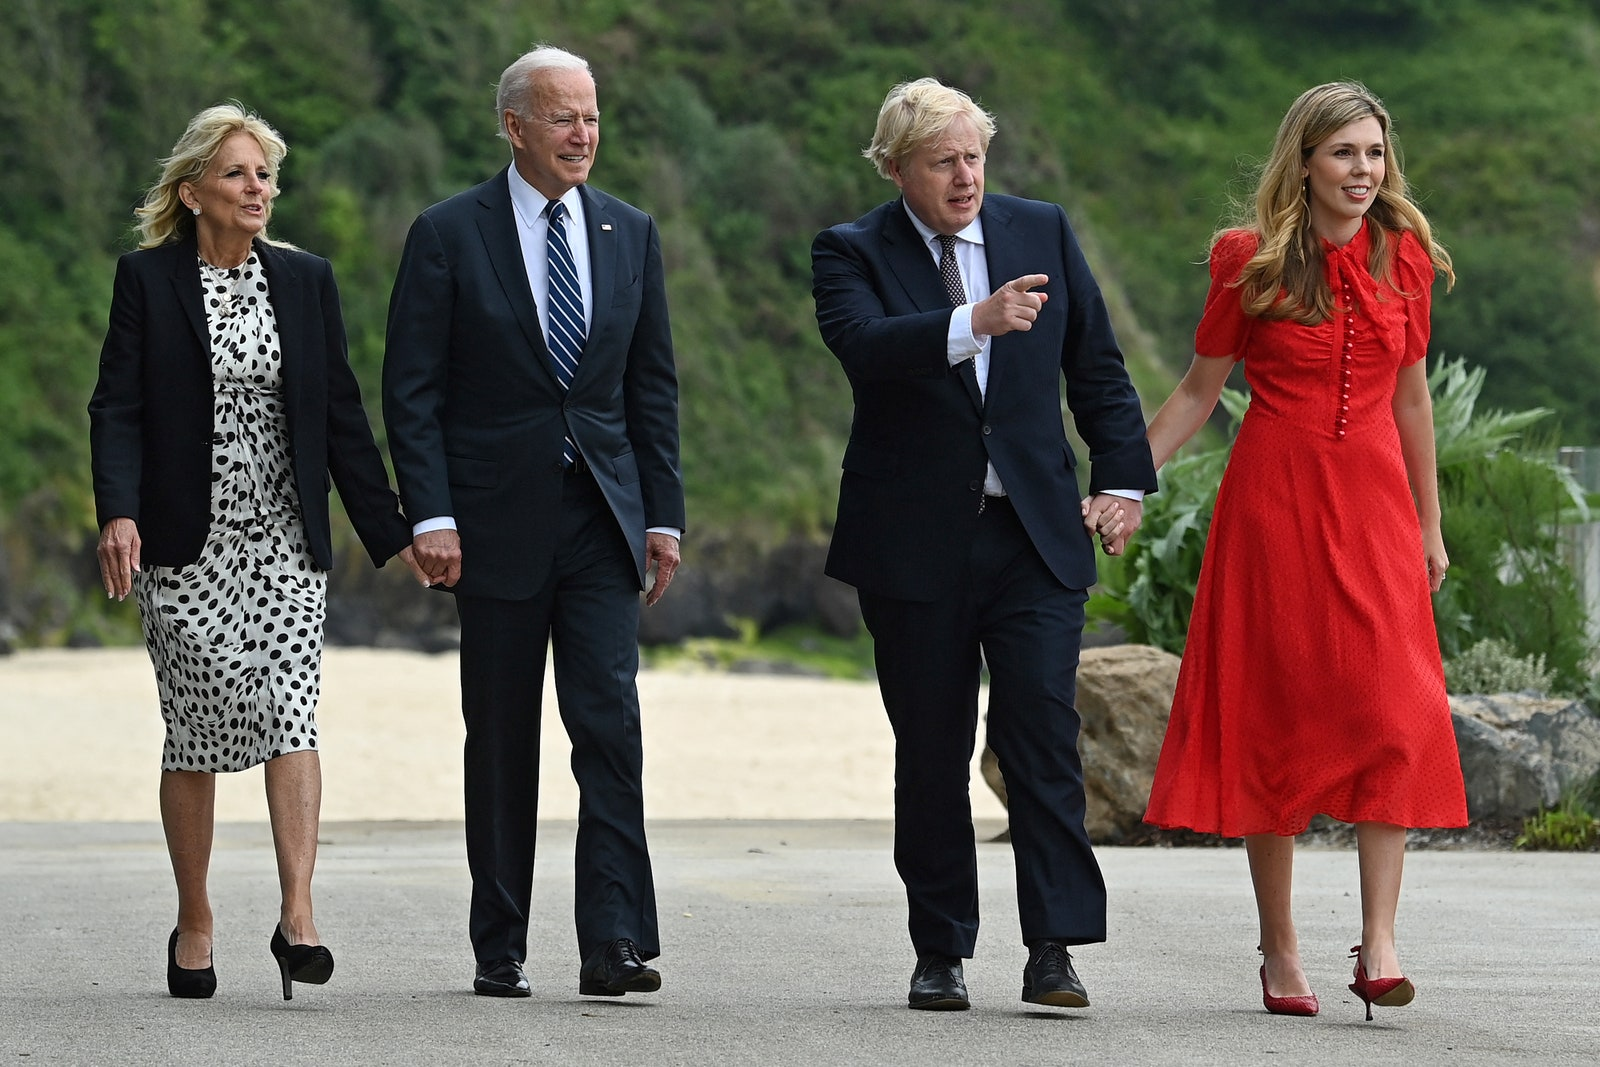 British Prime Minister Boris Johnson and his wife Carrie Johnson walk with U.S. President Joe Biden and First Lady Jill...